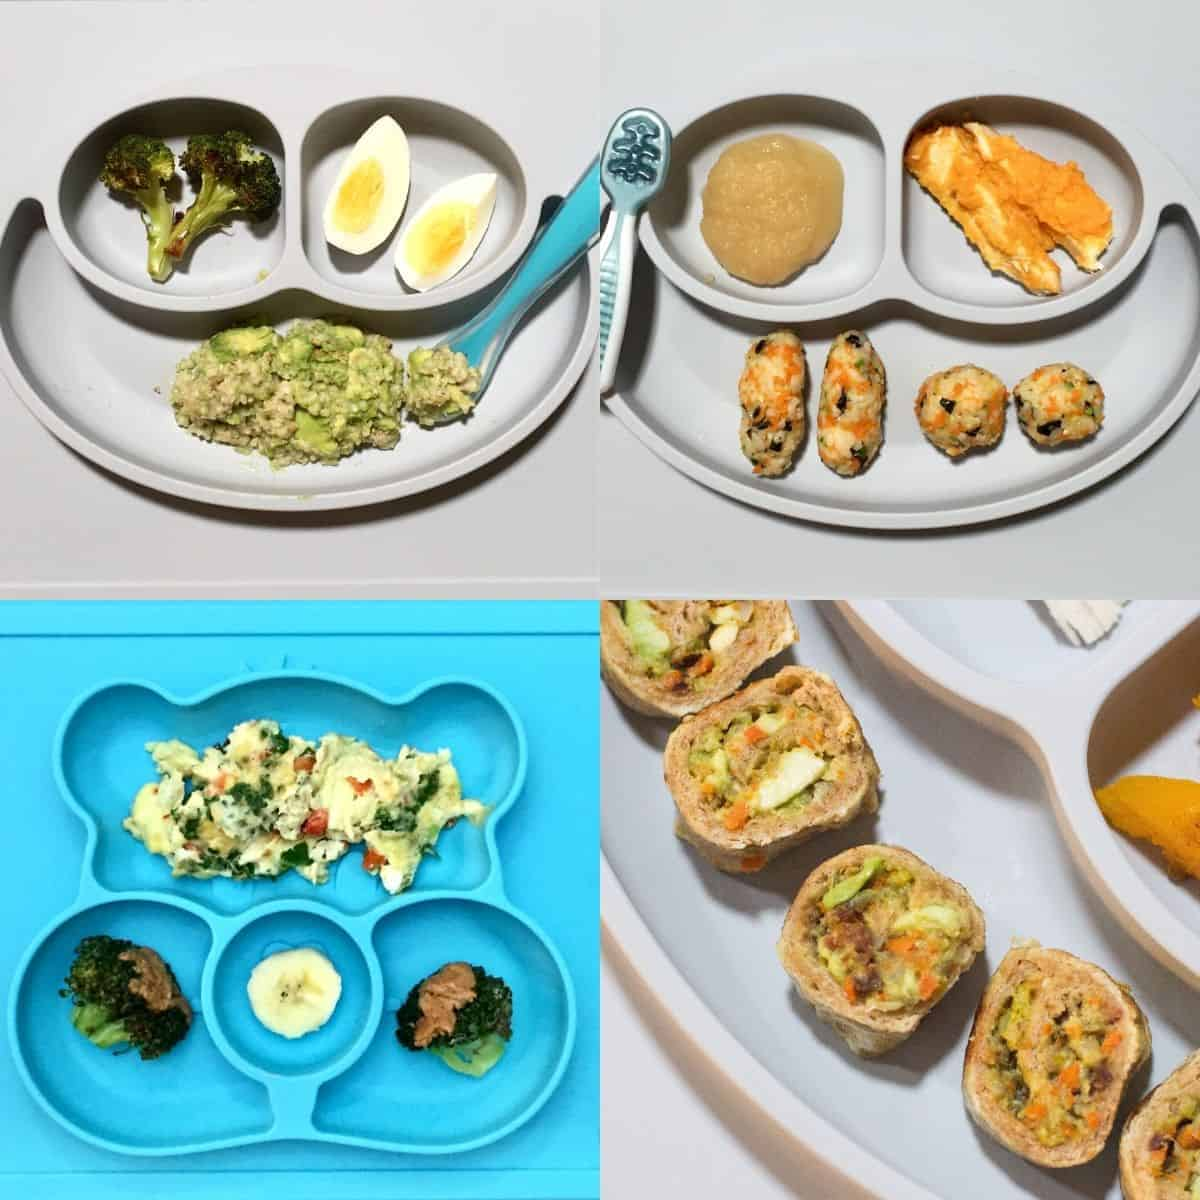 four plates showing chopped vegetables added to oatmeal, rice fingers, scrambled eggs, and toast roll-ups